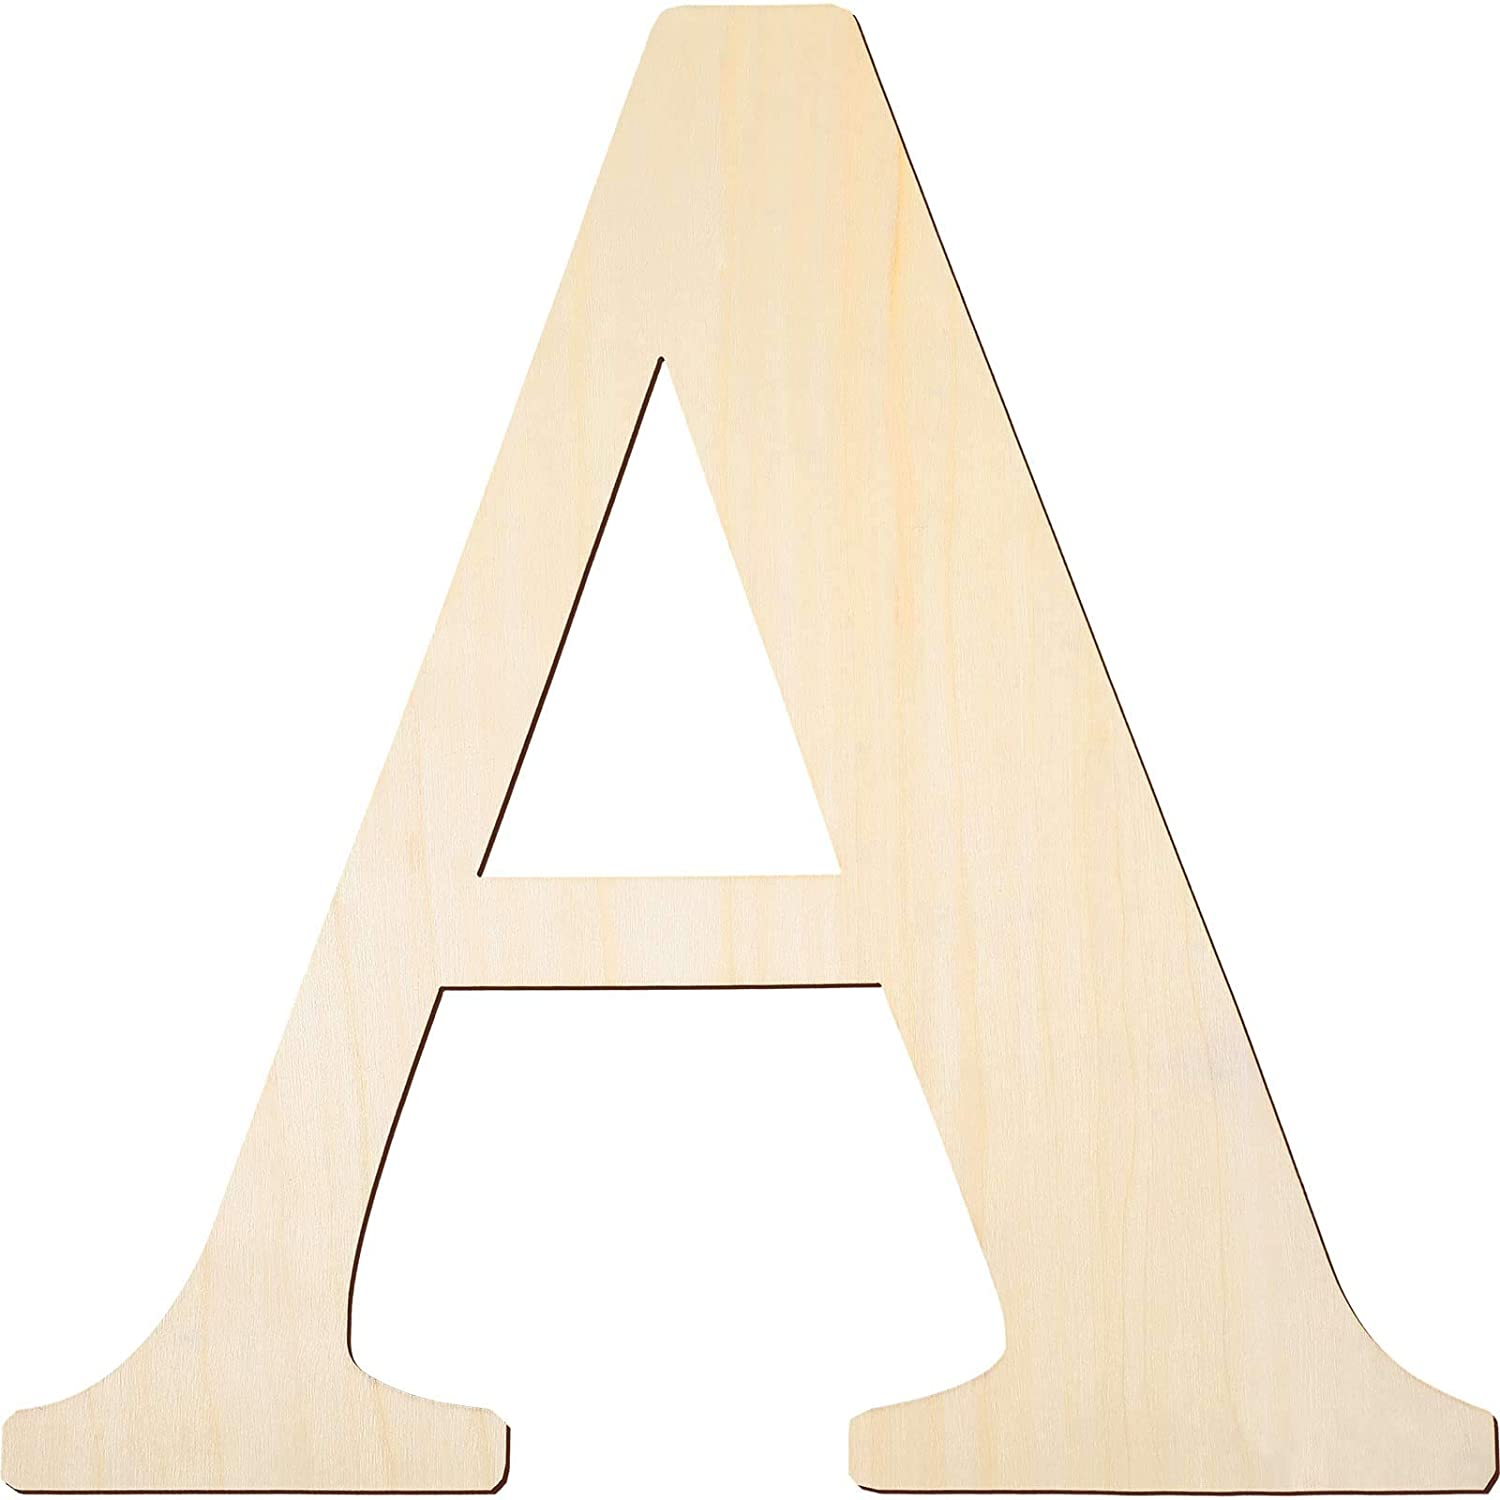 12 Inch Unfinished Wooden Letters Wood Letters Sign Decoration Wooden Decoration for Painting, Craft and Home Wall Decoration (Letter A)